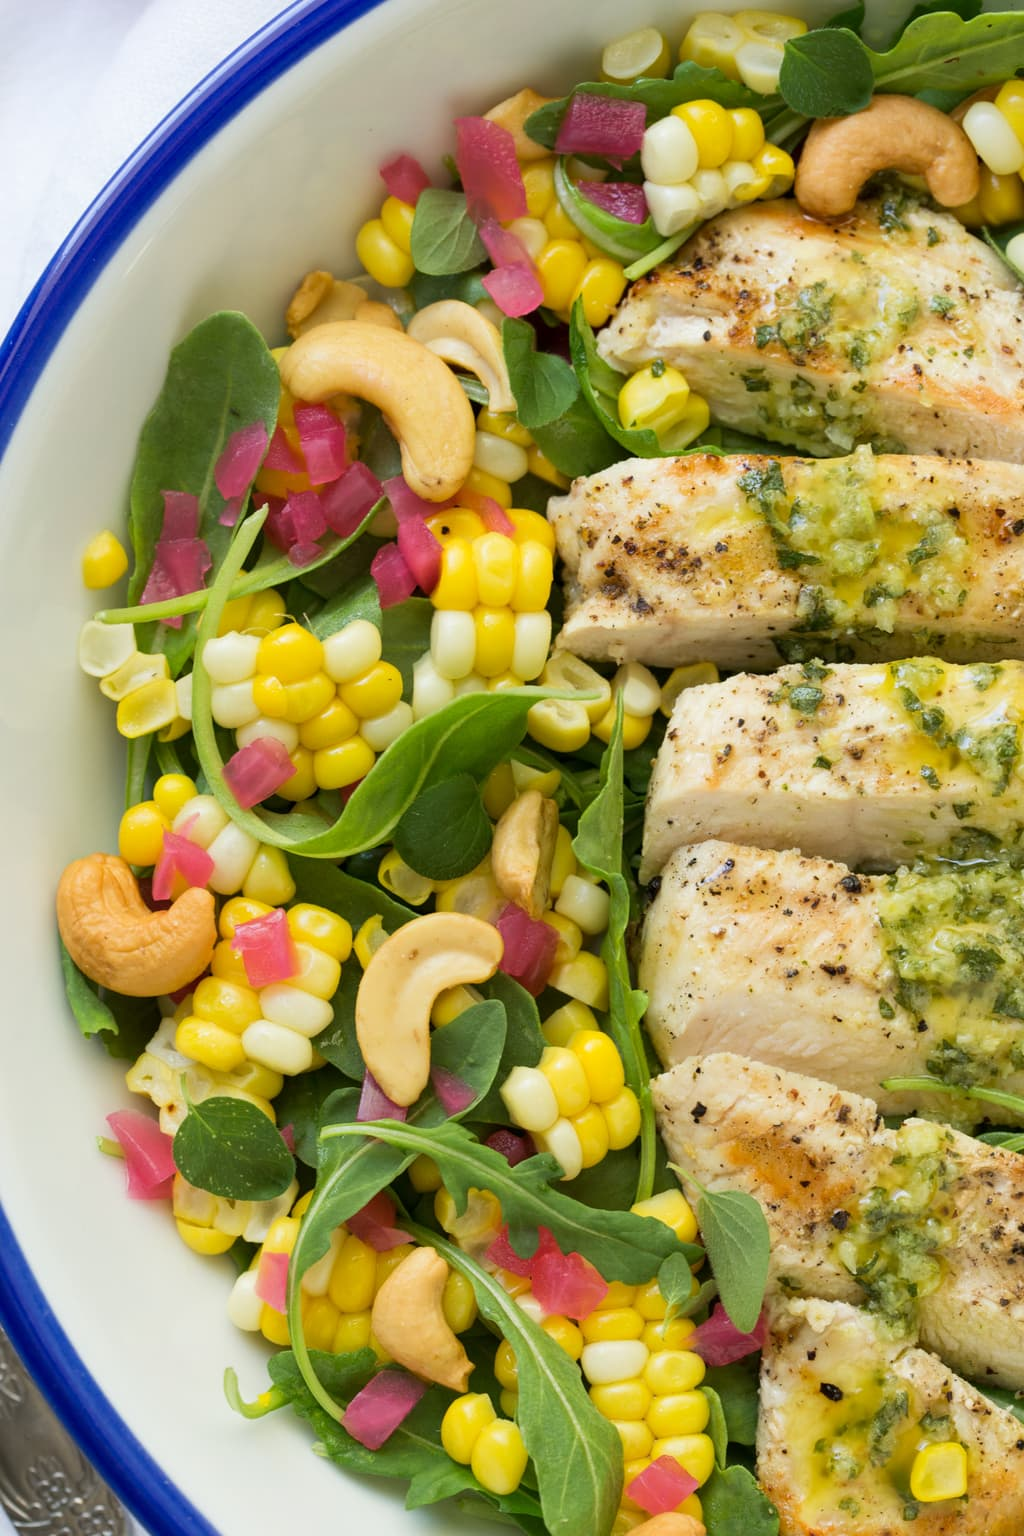 Lemon Oregano Chicken and Corn Salad - This delicious, colorful, vibrant salad is also healthy and loaded with fresh flavor! It works well any time and in any season! thecafesucrefarine.com